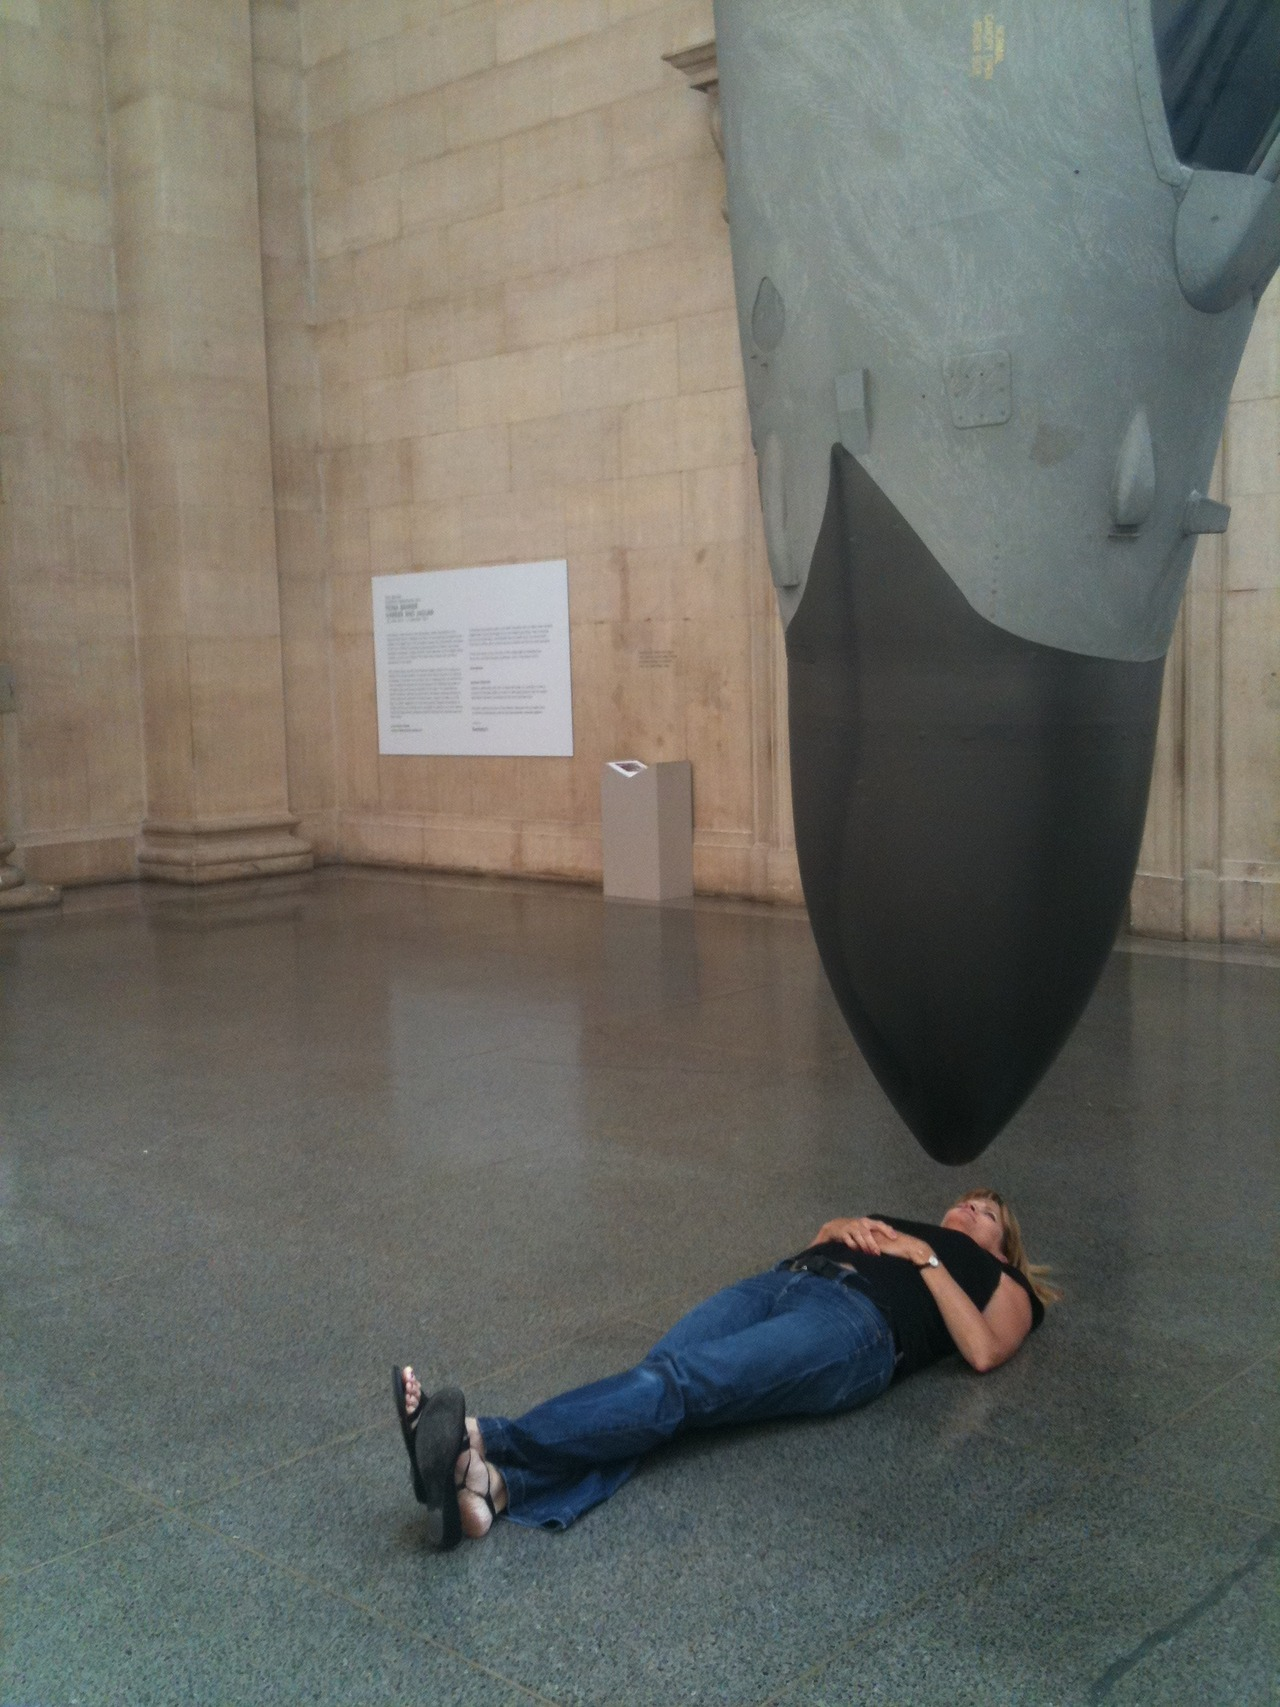 Harrier and Tourist, Fiona Banner at Tate Modern